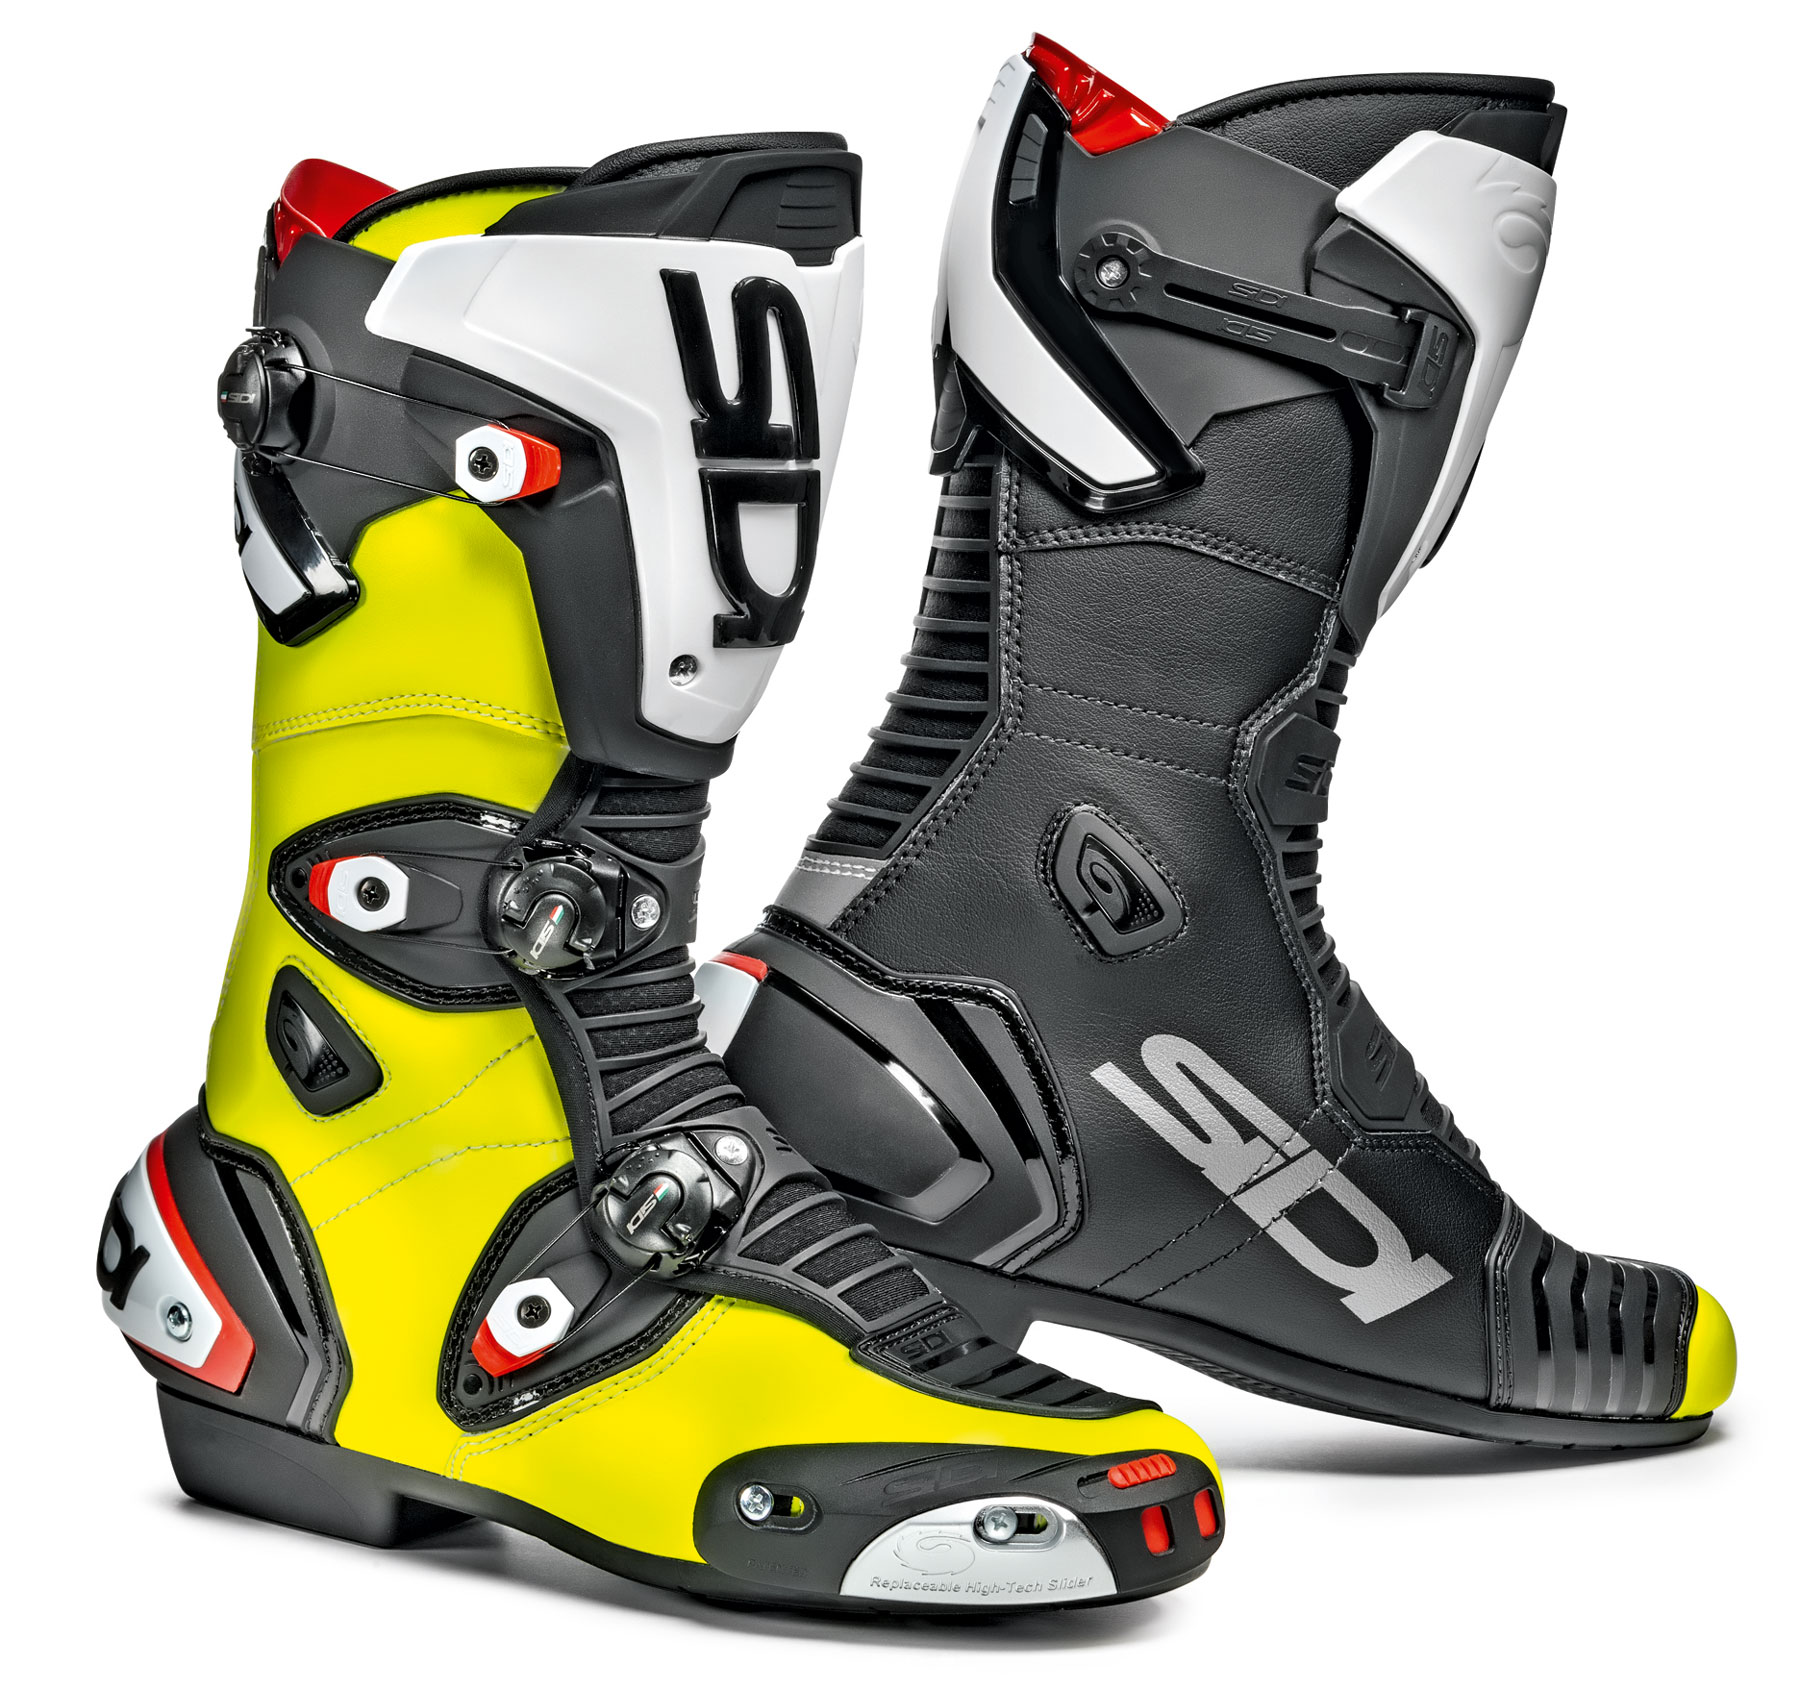 sidi mag 1 boots yellow black free uk delivery. Black Bedroom Furniture Sets. Home Design Ideas